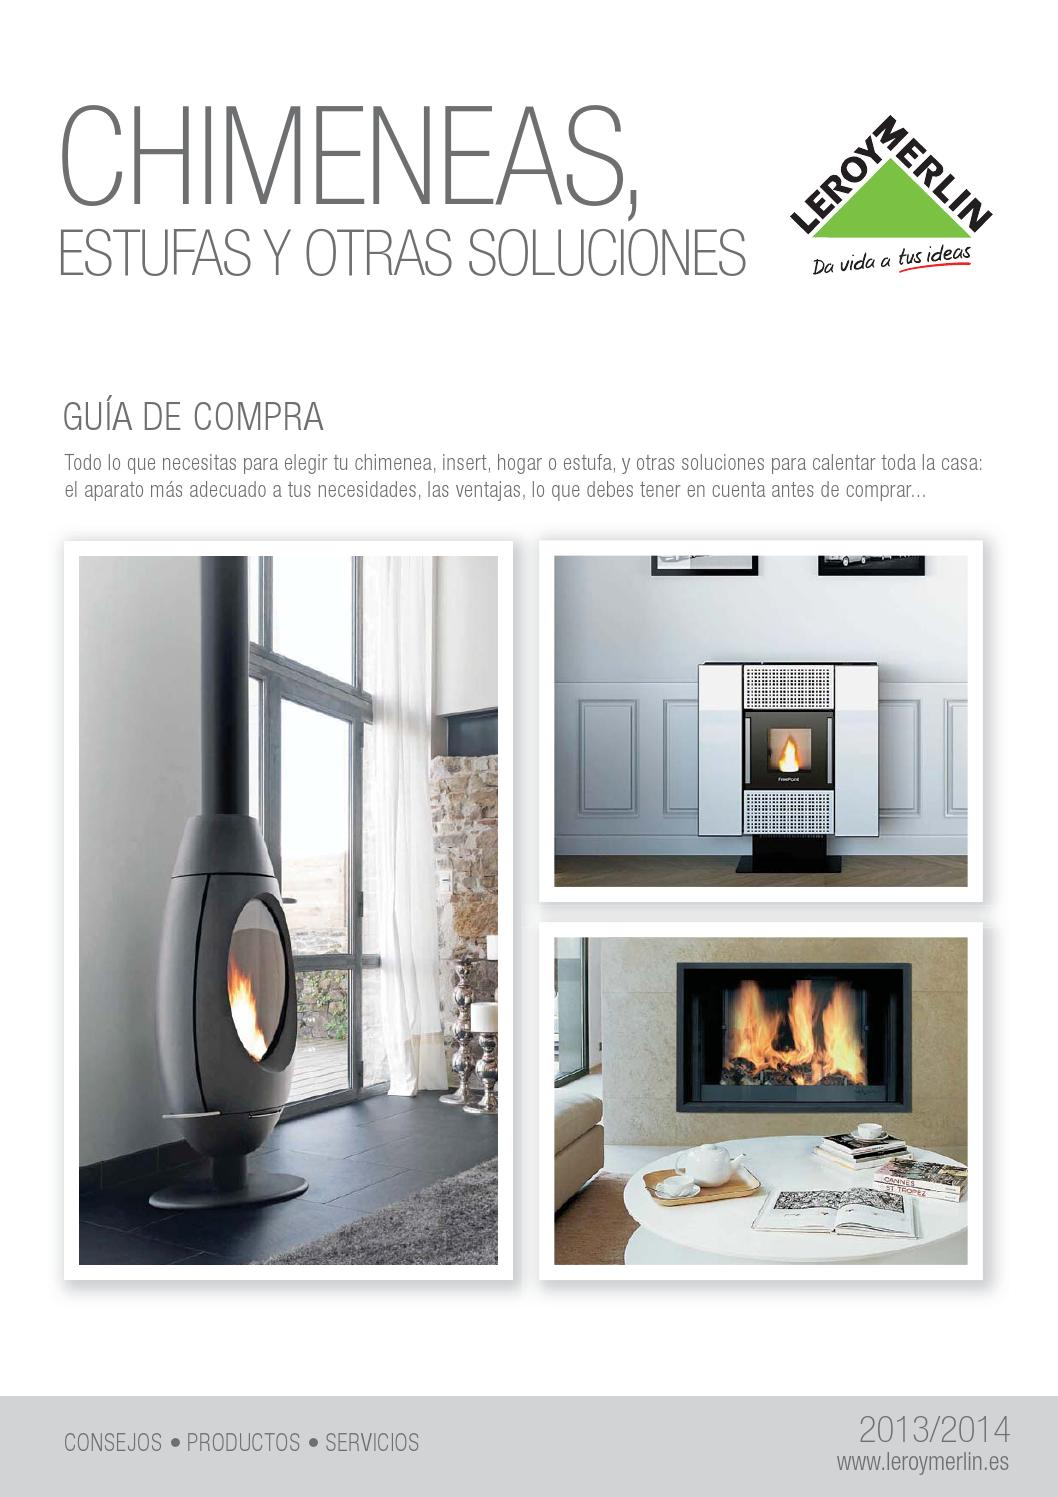 Chimeneas leroy merlin by issuu - Chimeneas bioalcohol leroy merlin ...